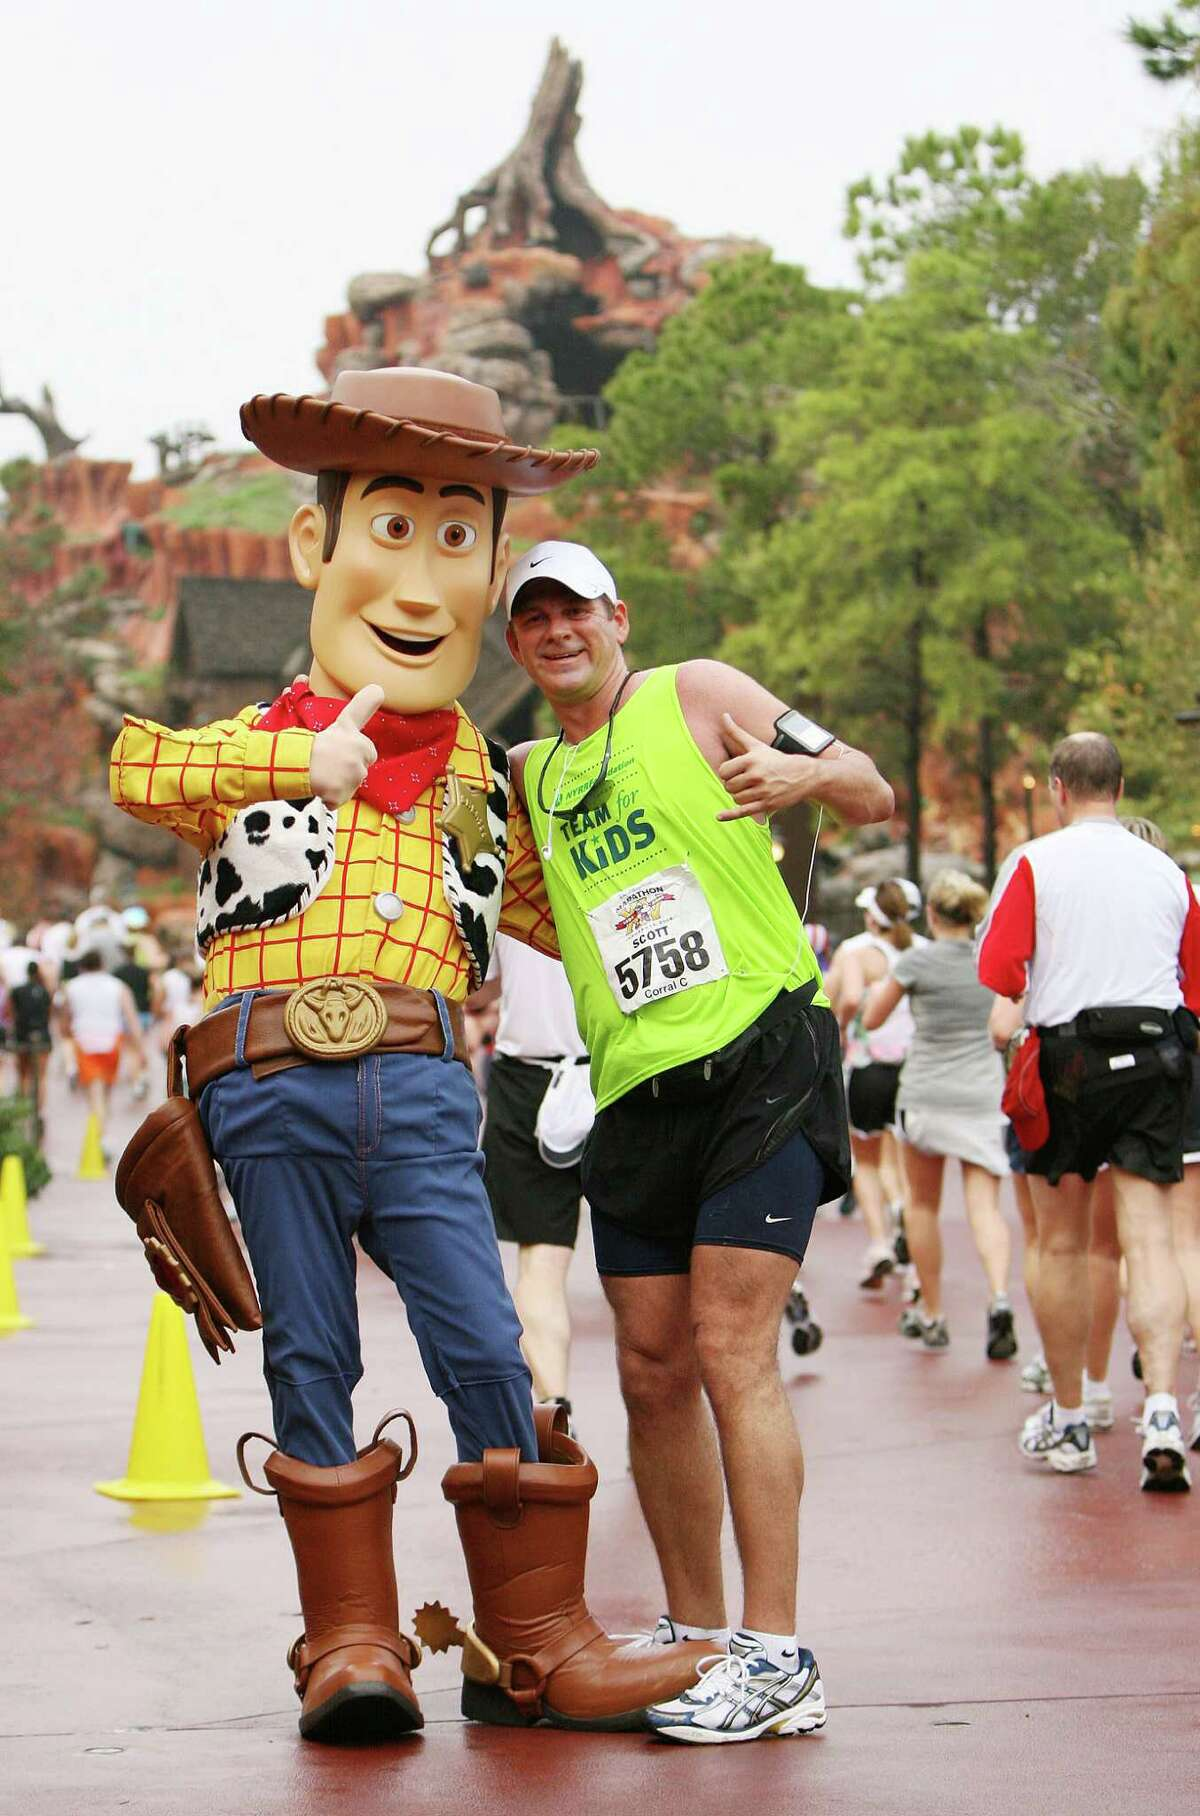 Athletes pose with characters (Woody from